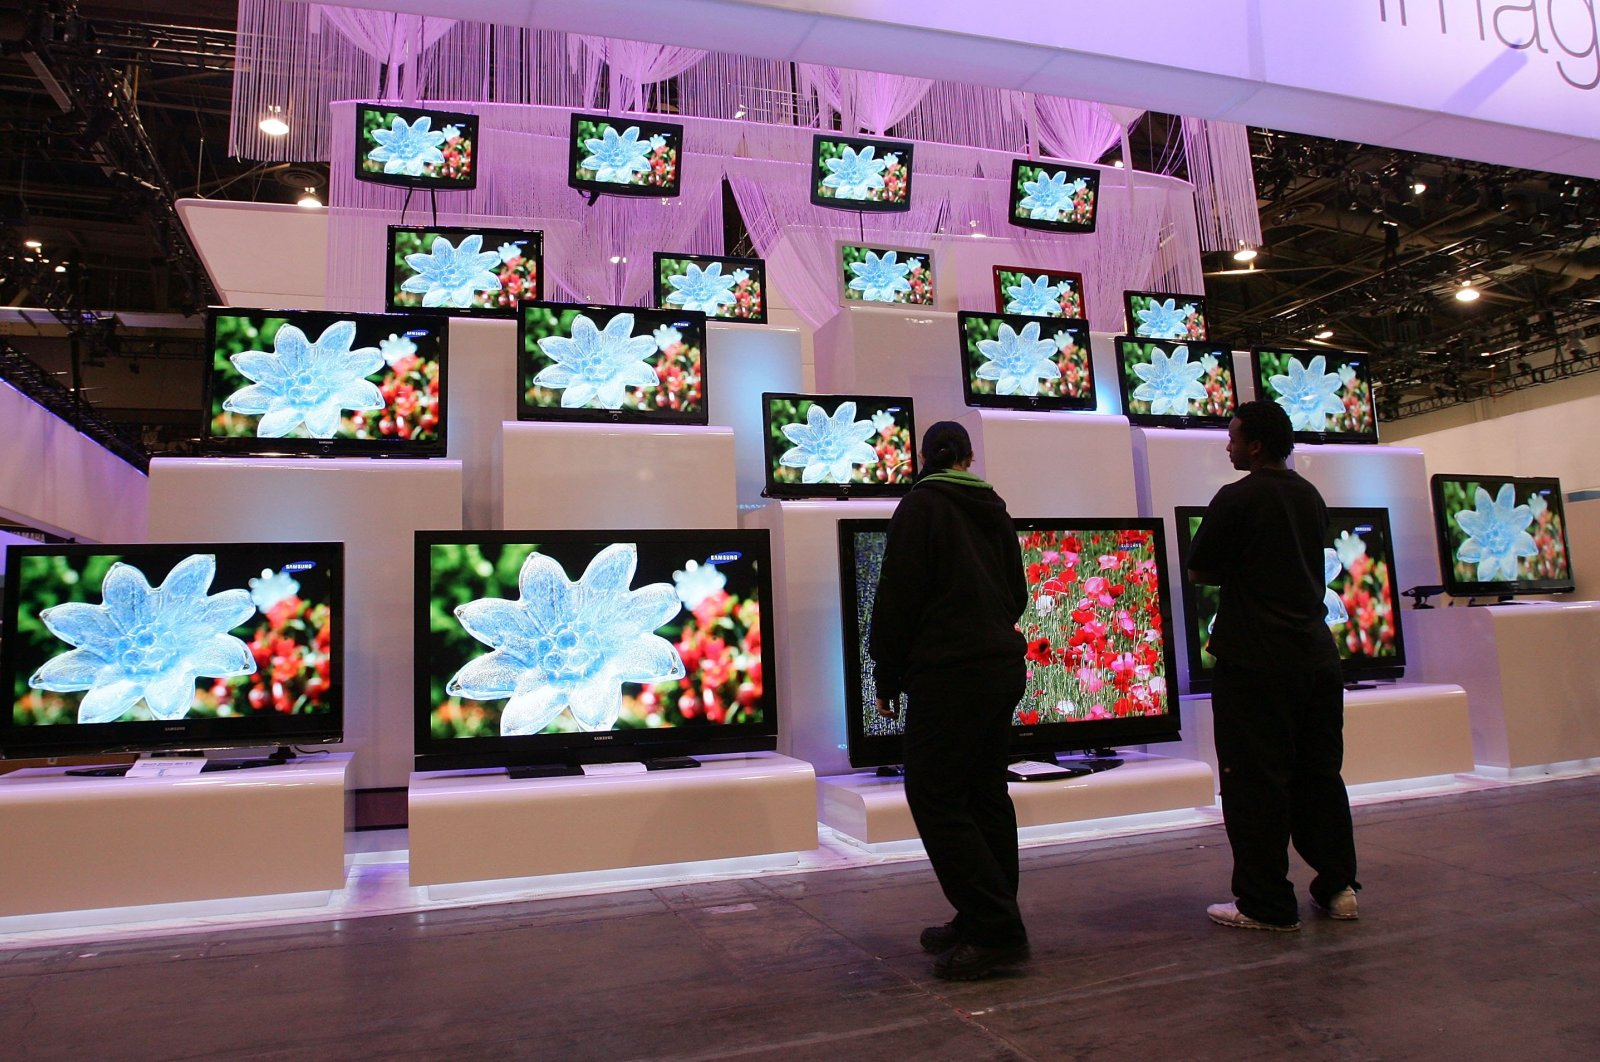 Workers look at a display of televisions by Samsung at the Las Vegas Convention Center in Las Vegas, Nevada, Jan. 5, 2007. (AFP Photo)